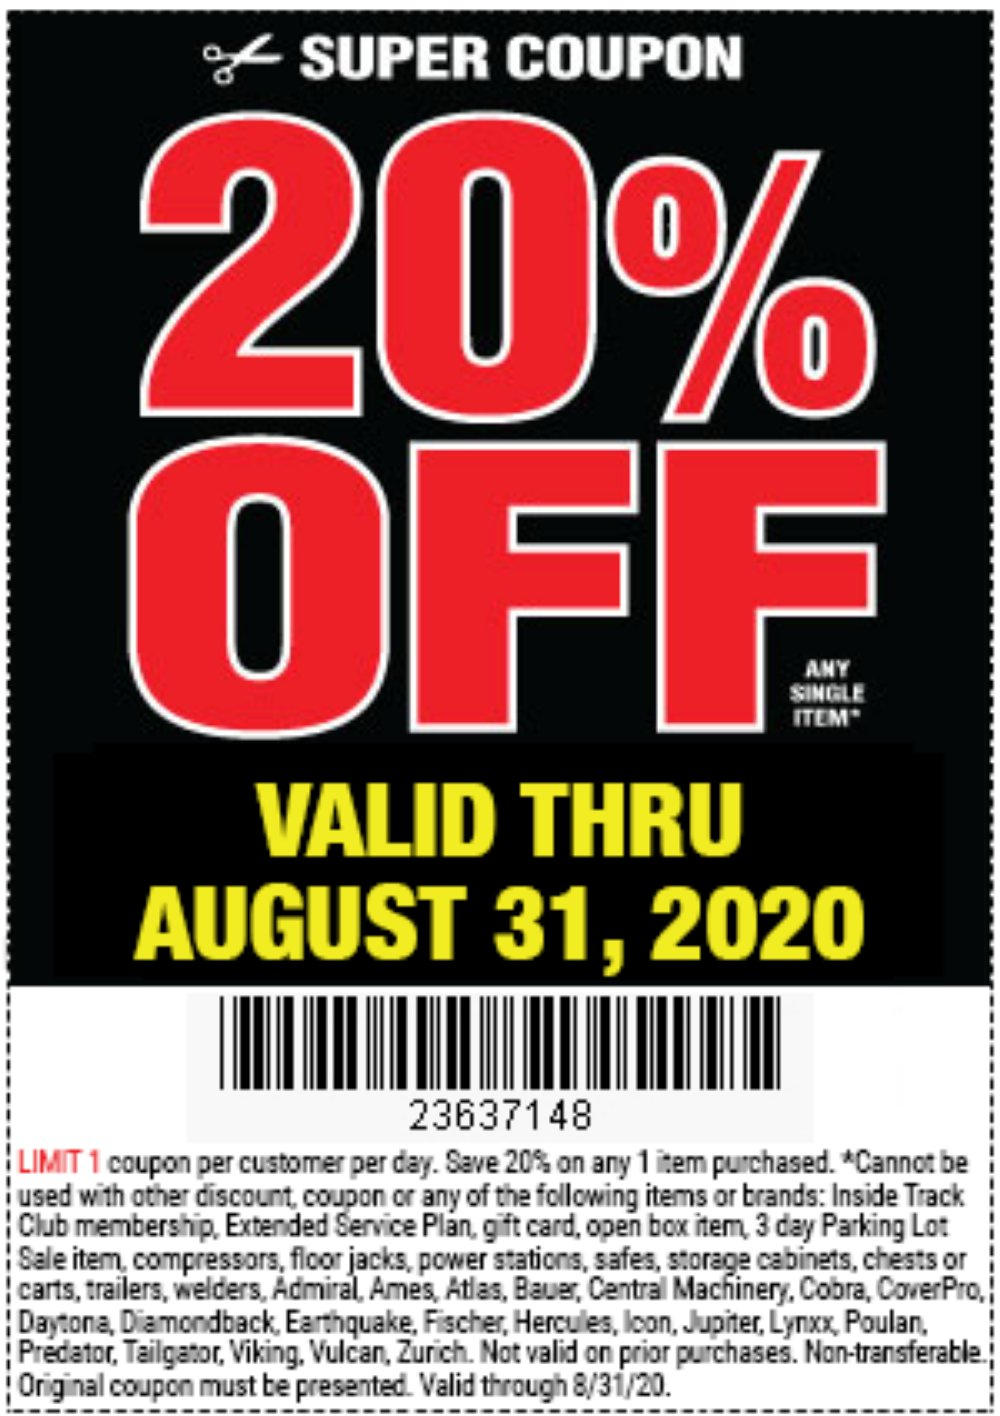 Harbor Freight Coupon, HF Coupons - 20 Percent Off Any Item